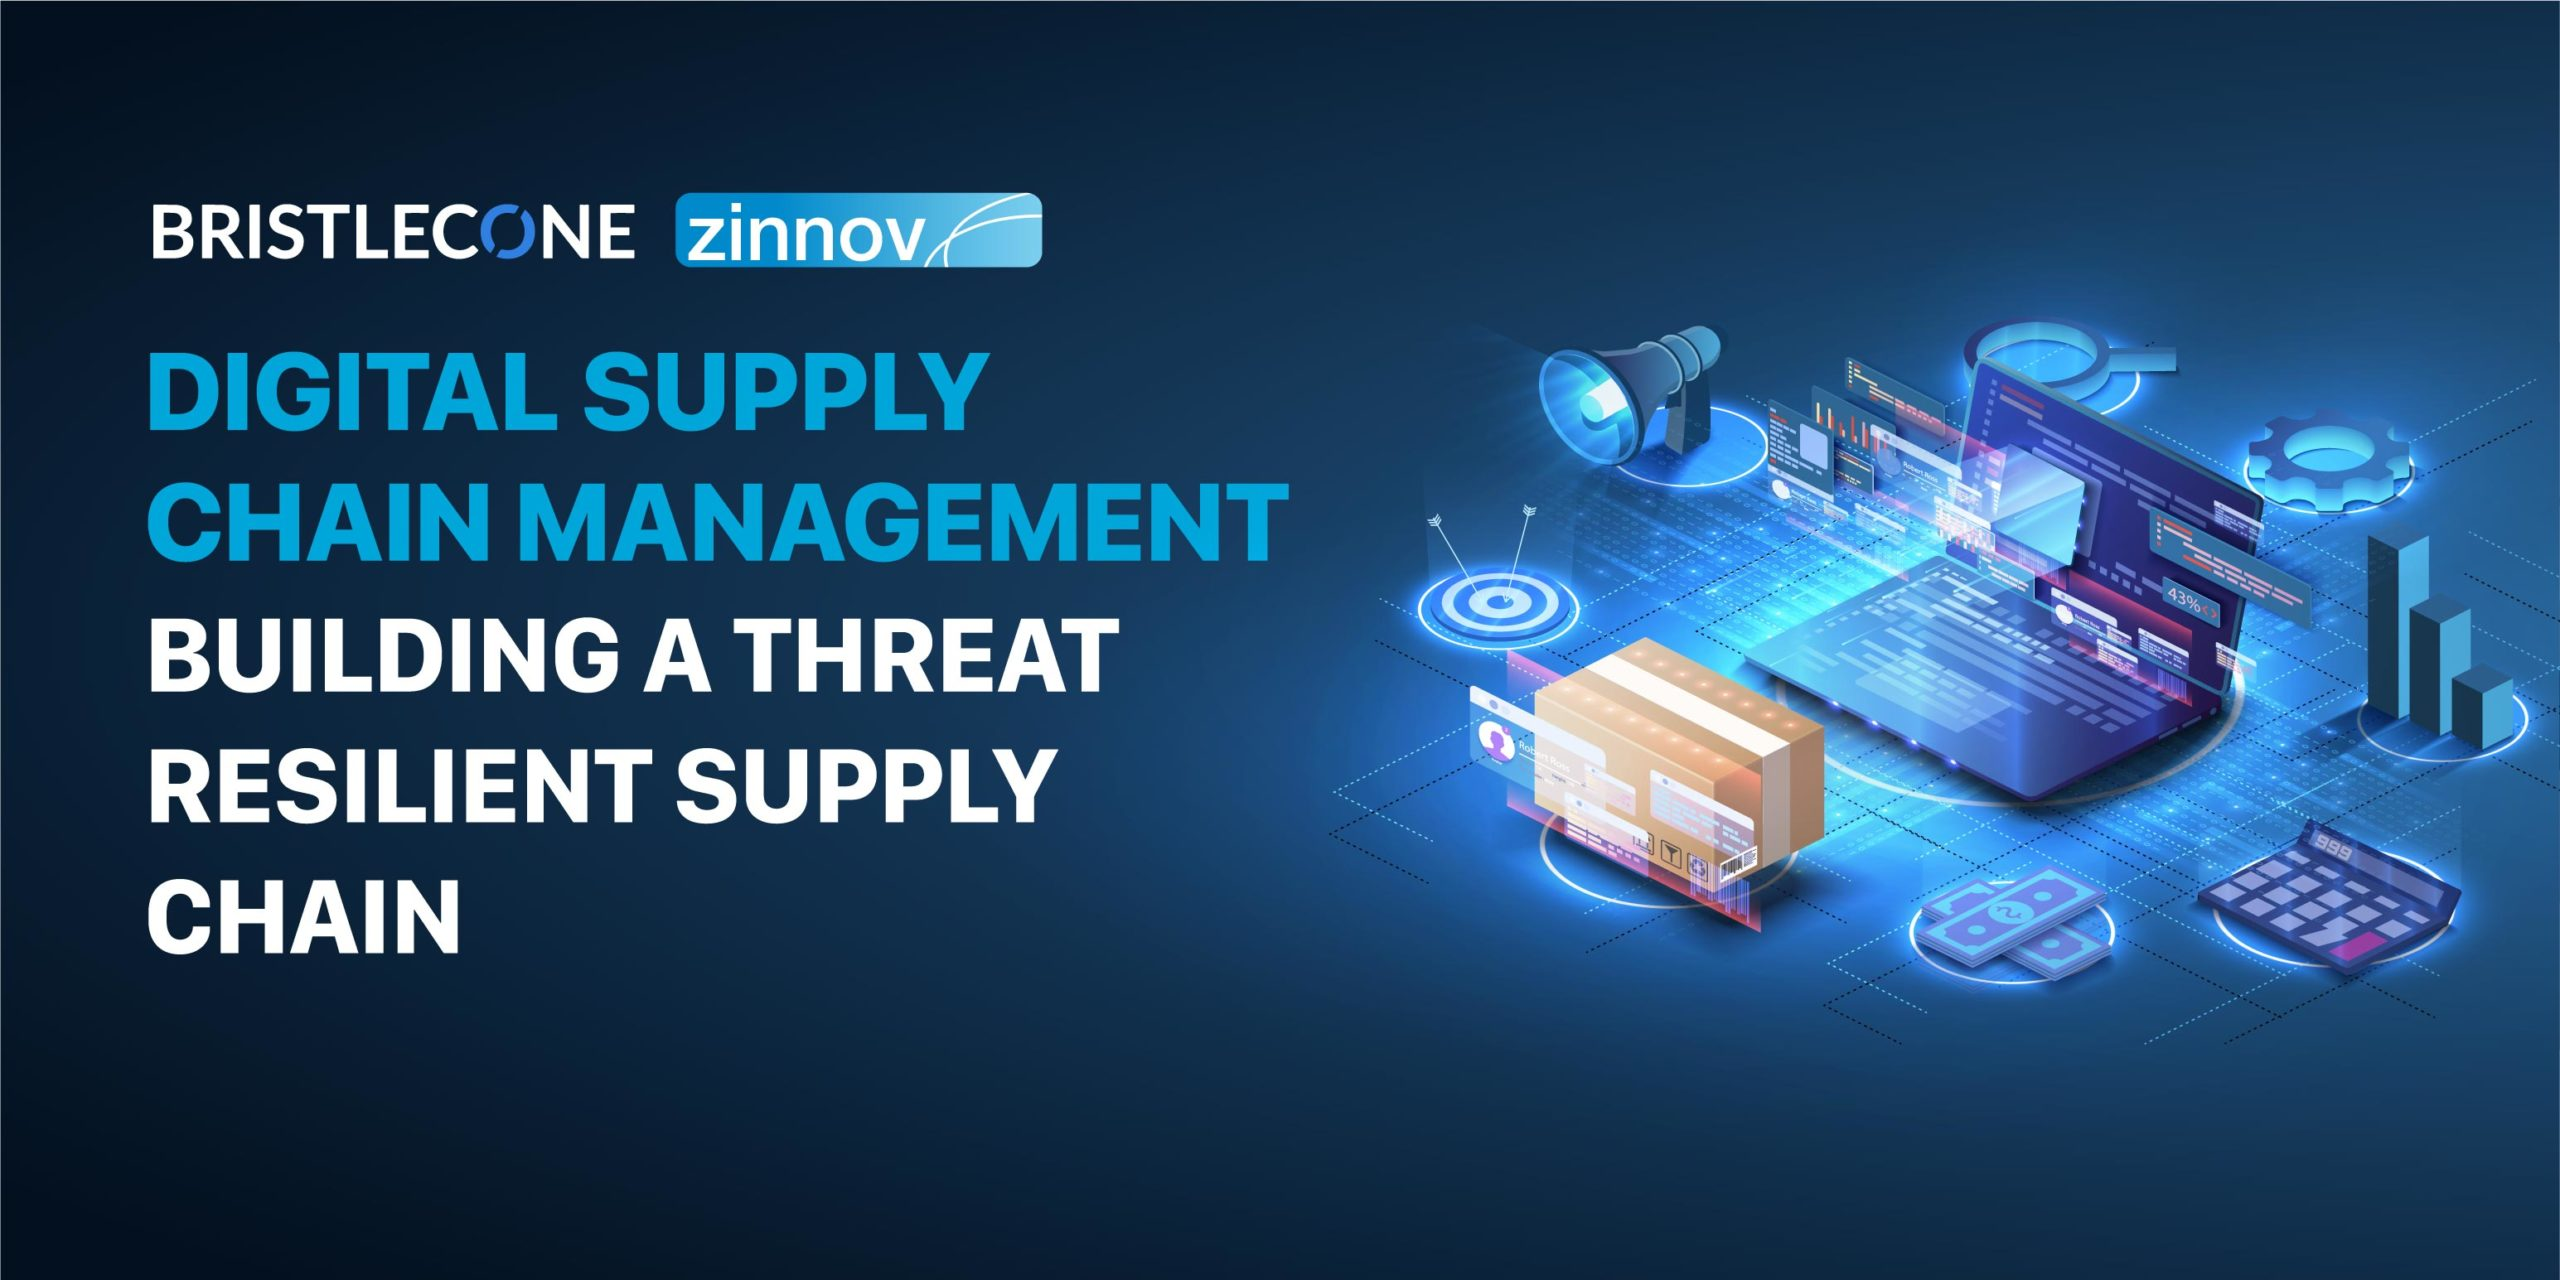 digital supply chain management